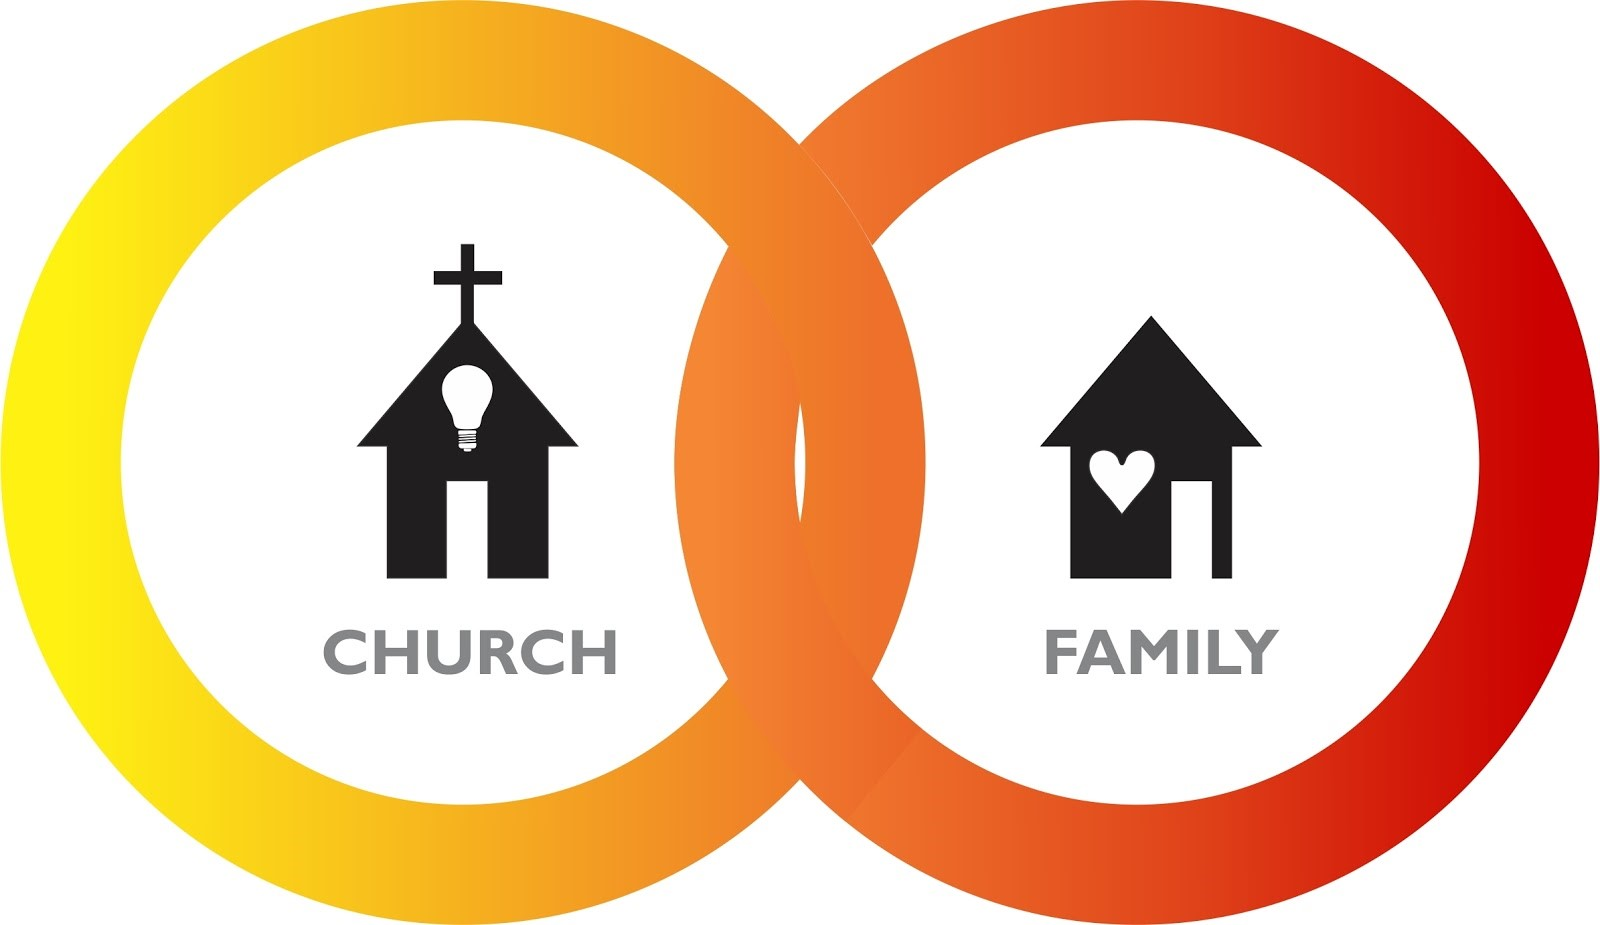 Partner With Parents - We believe that by intentionally establishing a partnership with parents, we can make the greatest impact on the spiritual life of every child in our ministry. Our weekly Orange curriculum connects parents and church leaders with the same strategy to best reach kids of all ages and phases.